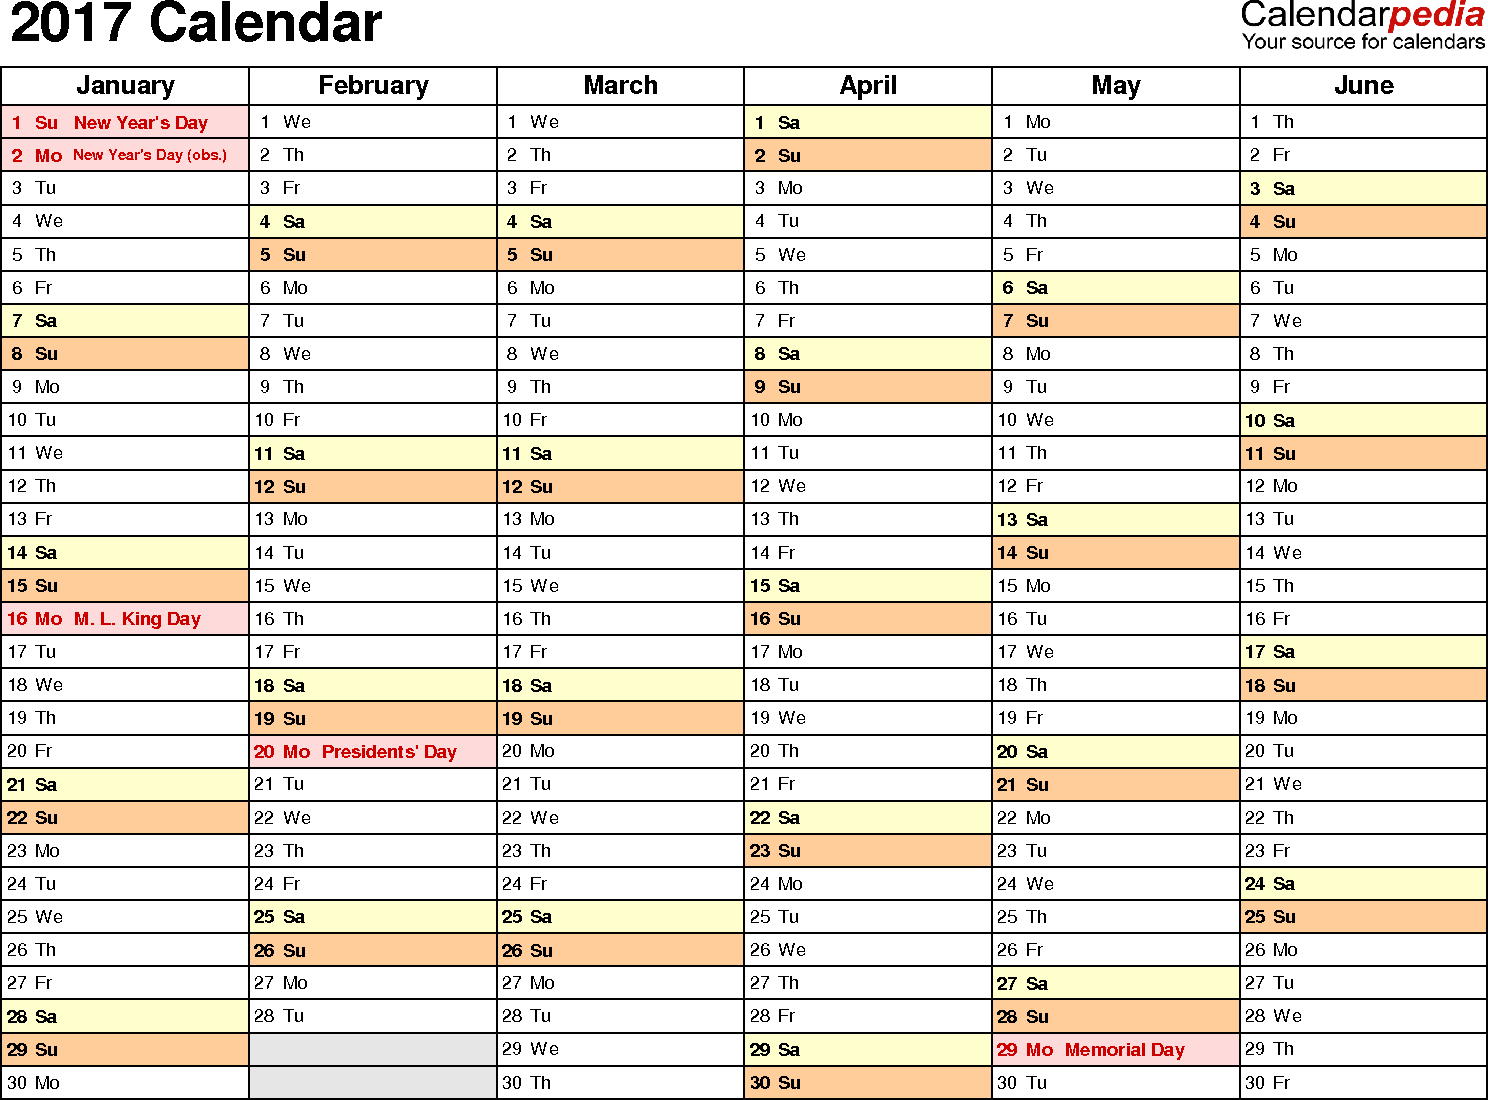 Ediblewildsus  Splendid  Calendar  Download  Free Printable Excel Templates Xls With Interesting Template   Calendar For Excel Months Horizontally  Pages Landscape Orientation With Lovely Mid Formula Excel Also Powerpivot For Excel  Add In Download In Addition Ssis Export To Excel And Shortcut Key Of Pivot Table In Excel As Well As Attendance Sheet Excel Additionally Best Laptop For Excel From Calendarpediacom With Ediblewildsus  Interesting  Calendar  Download  Free Printable Excel Templates Xls With Lovely Template   Calendar For Excel Months Horizontally  Pages Landscape Orientation And Splendid Mid Formula Excel Also Powerpivot For Excel  Add In Download In Addition Ssis Export To Excel From Calendarpediacom